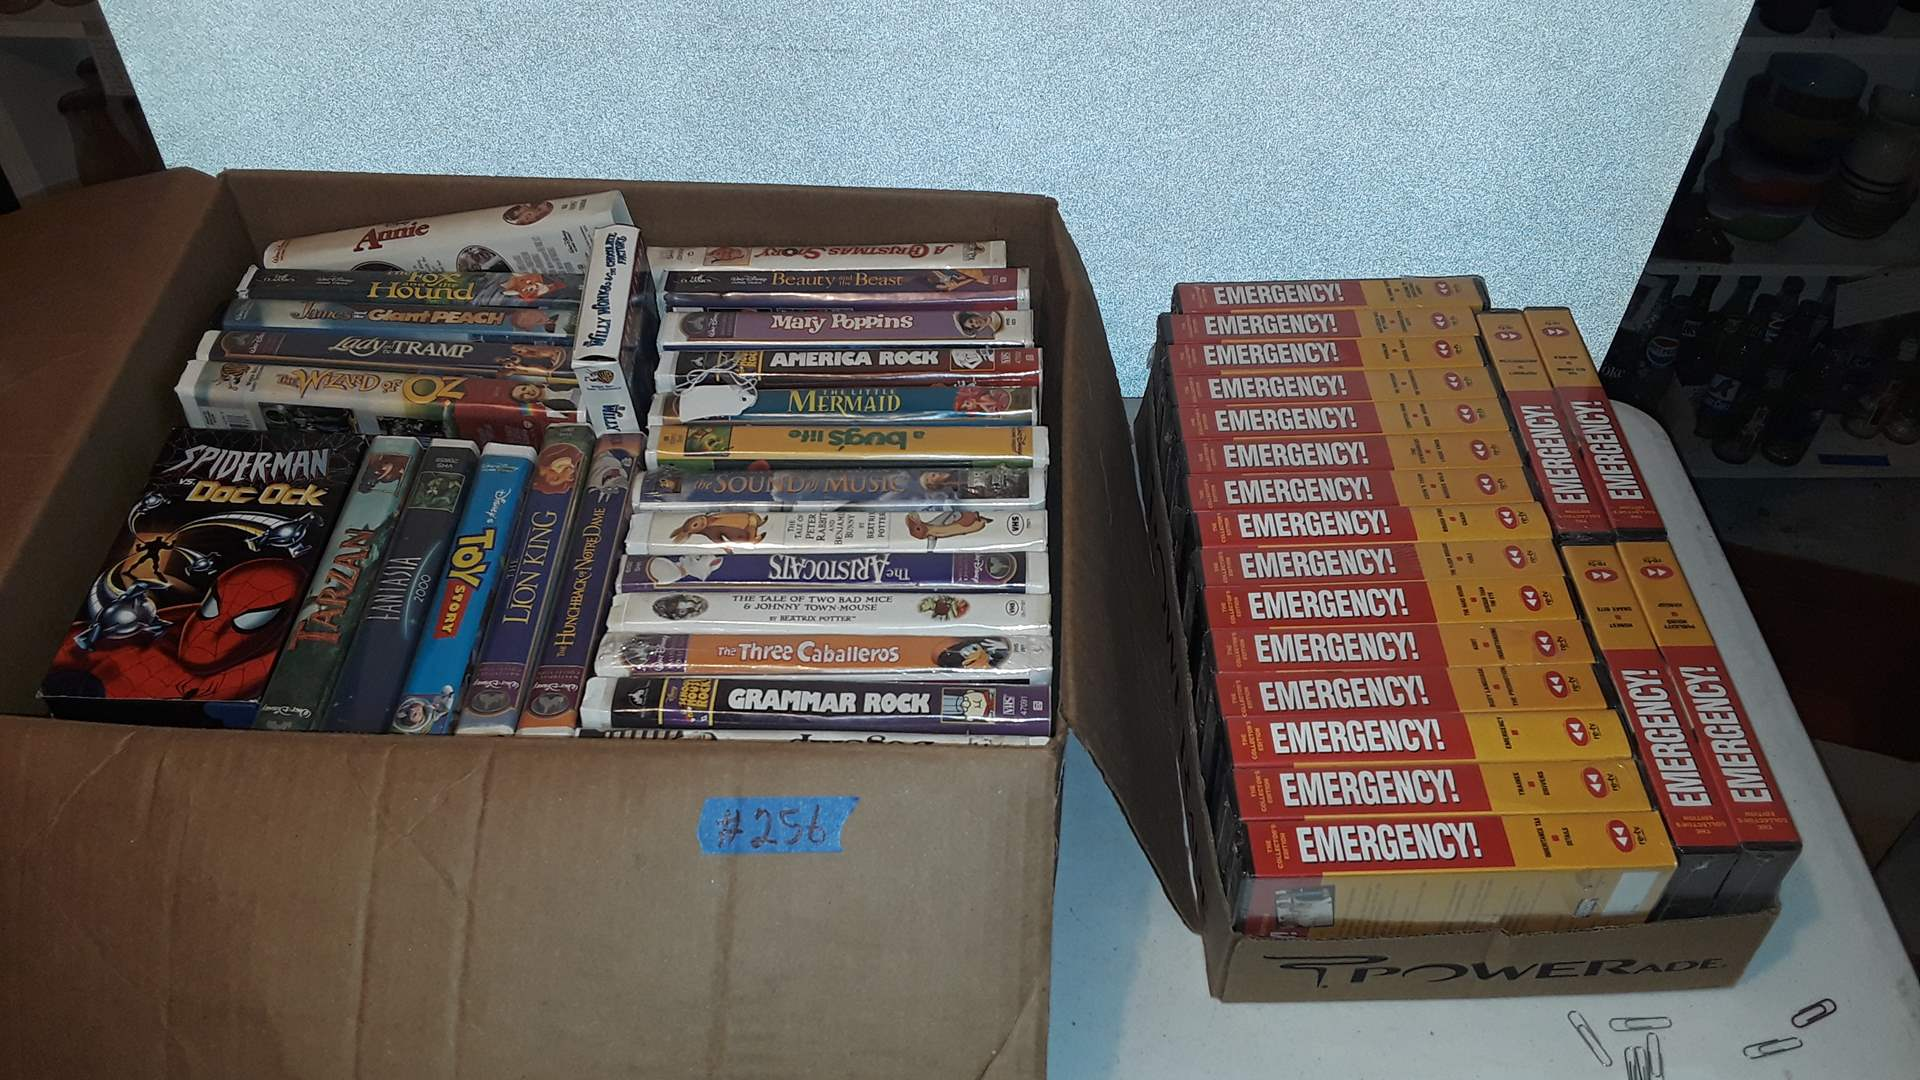 Lot # 256 VINTAGE EMERGENCY TV SHOW VCR TAPES, MIXED VCR TAPES